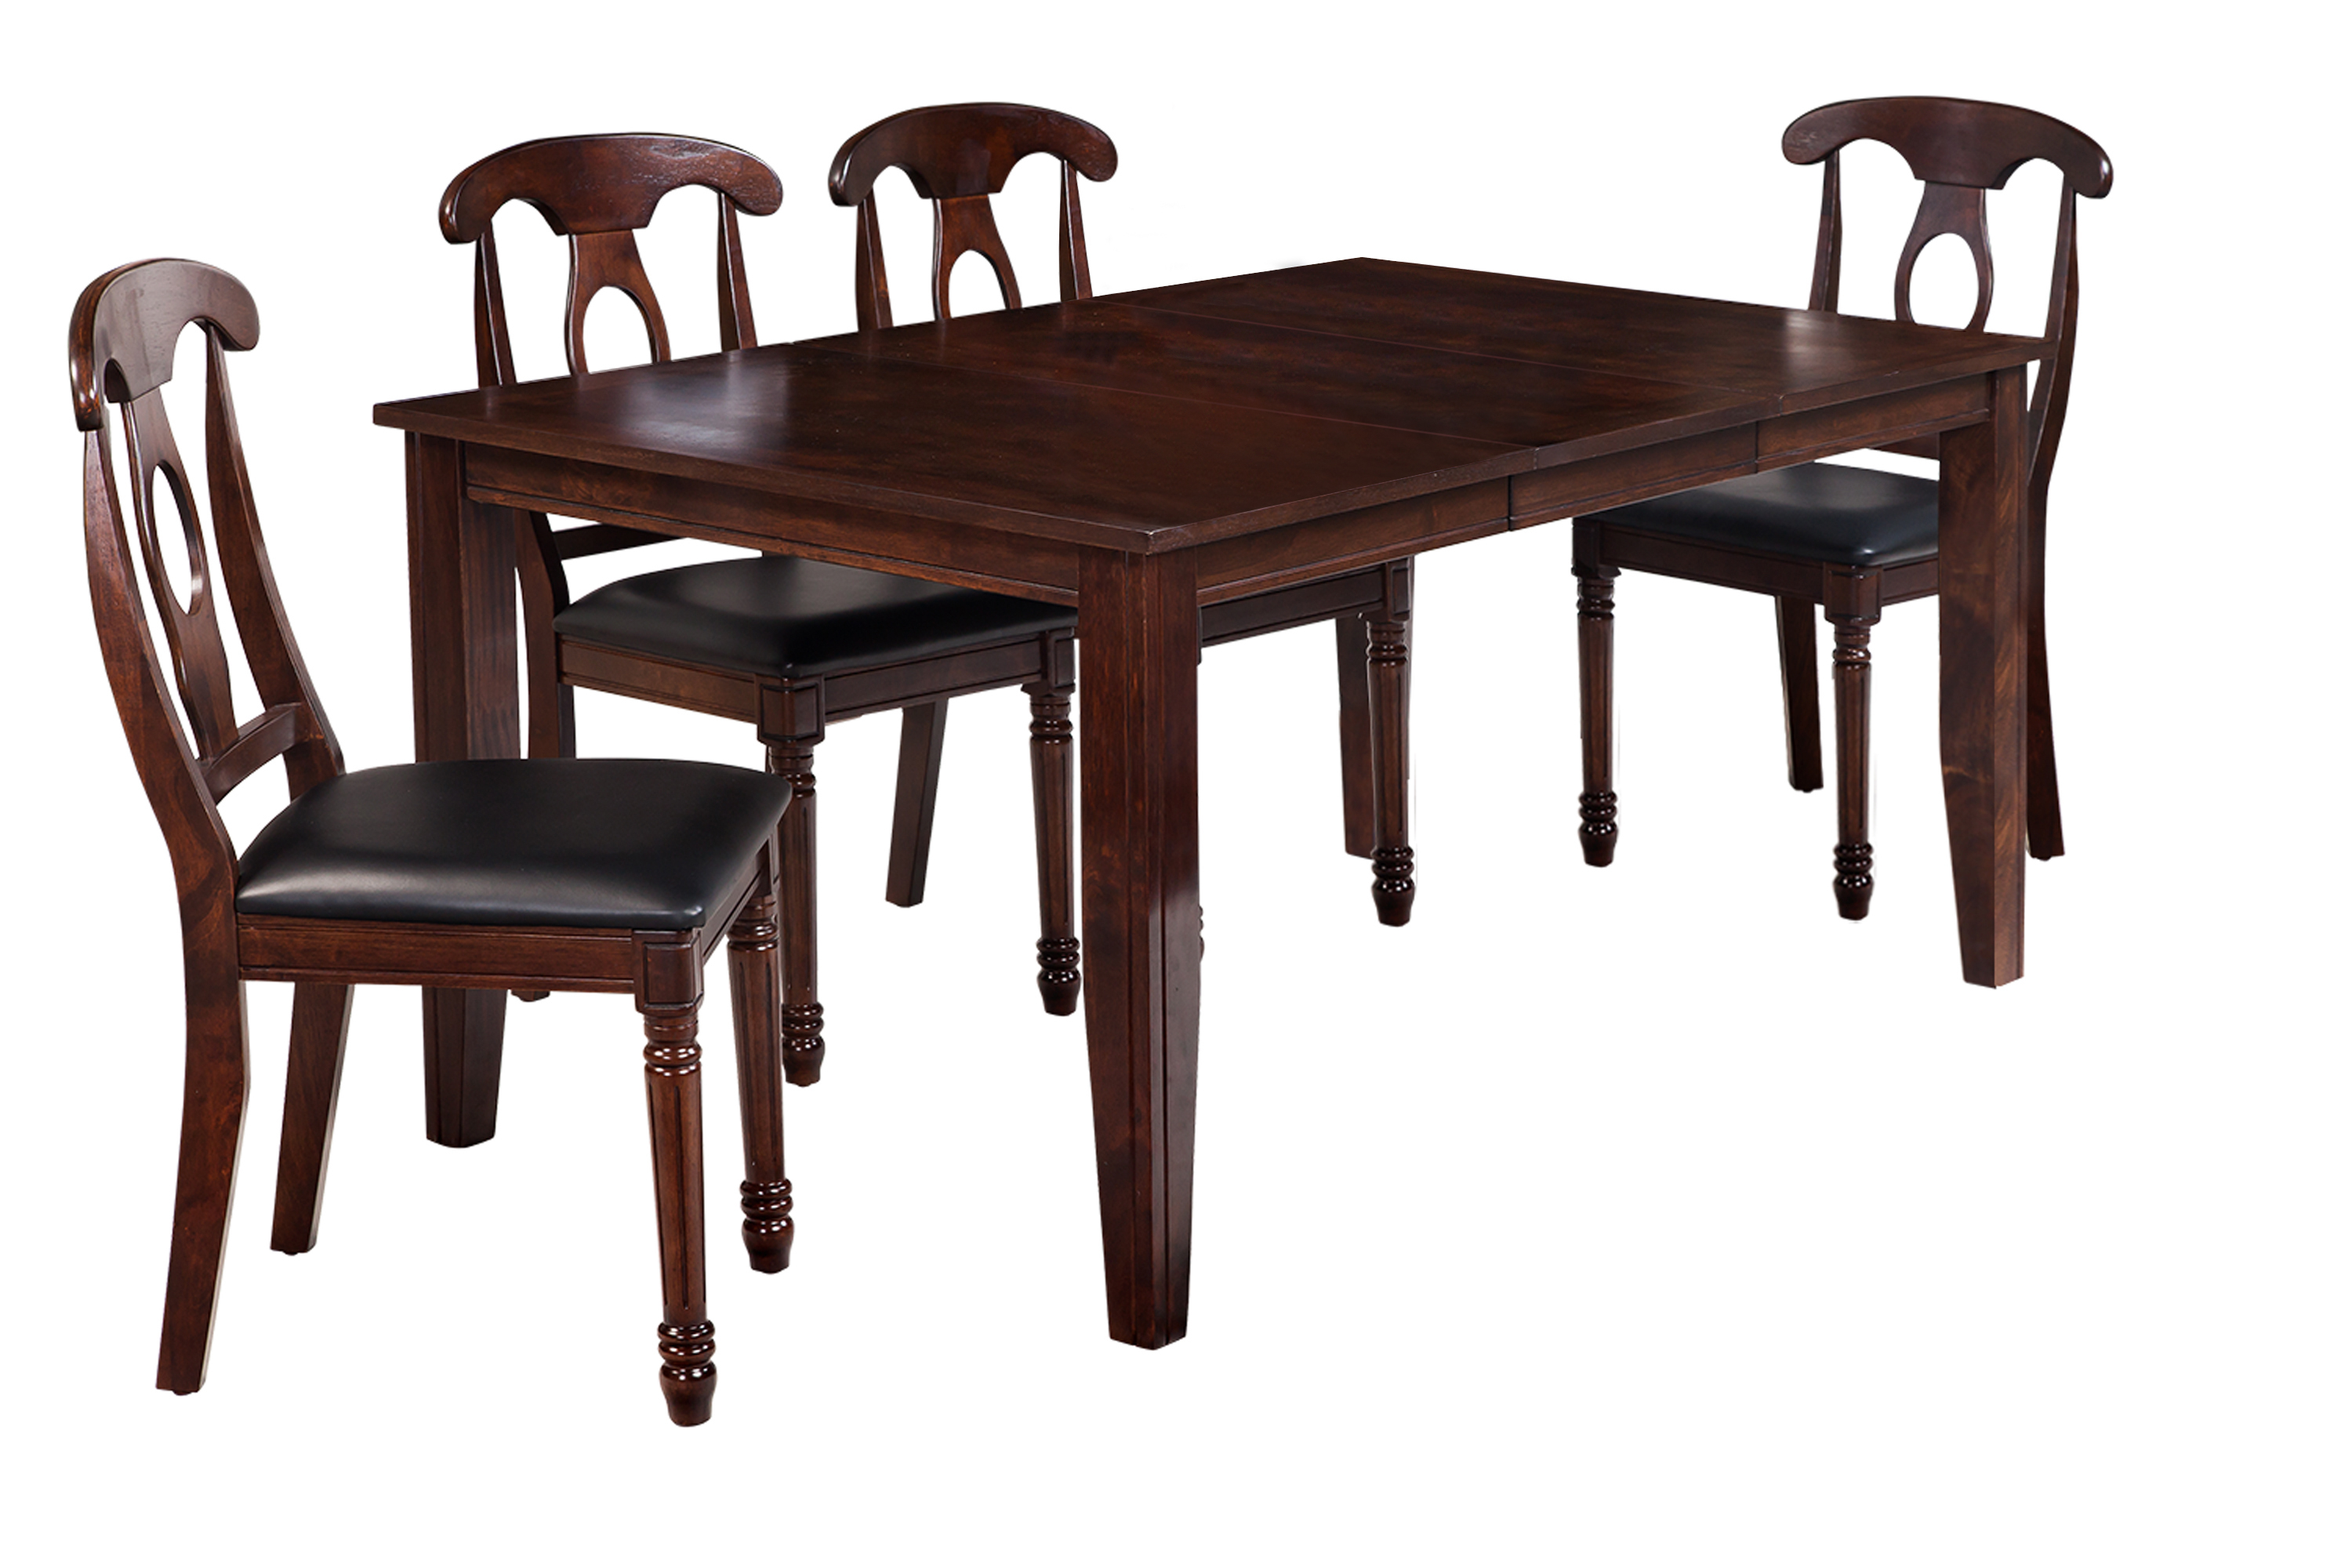 Adan 5 Piece Solid Wood Dining Sets (Set Of 5) With Regard To Current Ttp Furnish (Gallery 15 of 20)